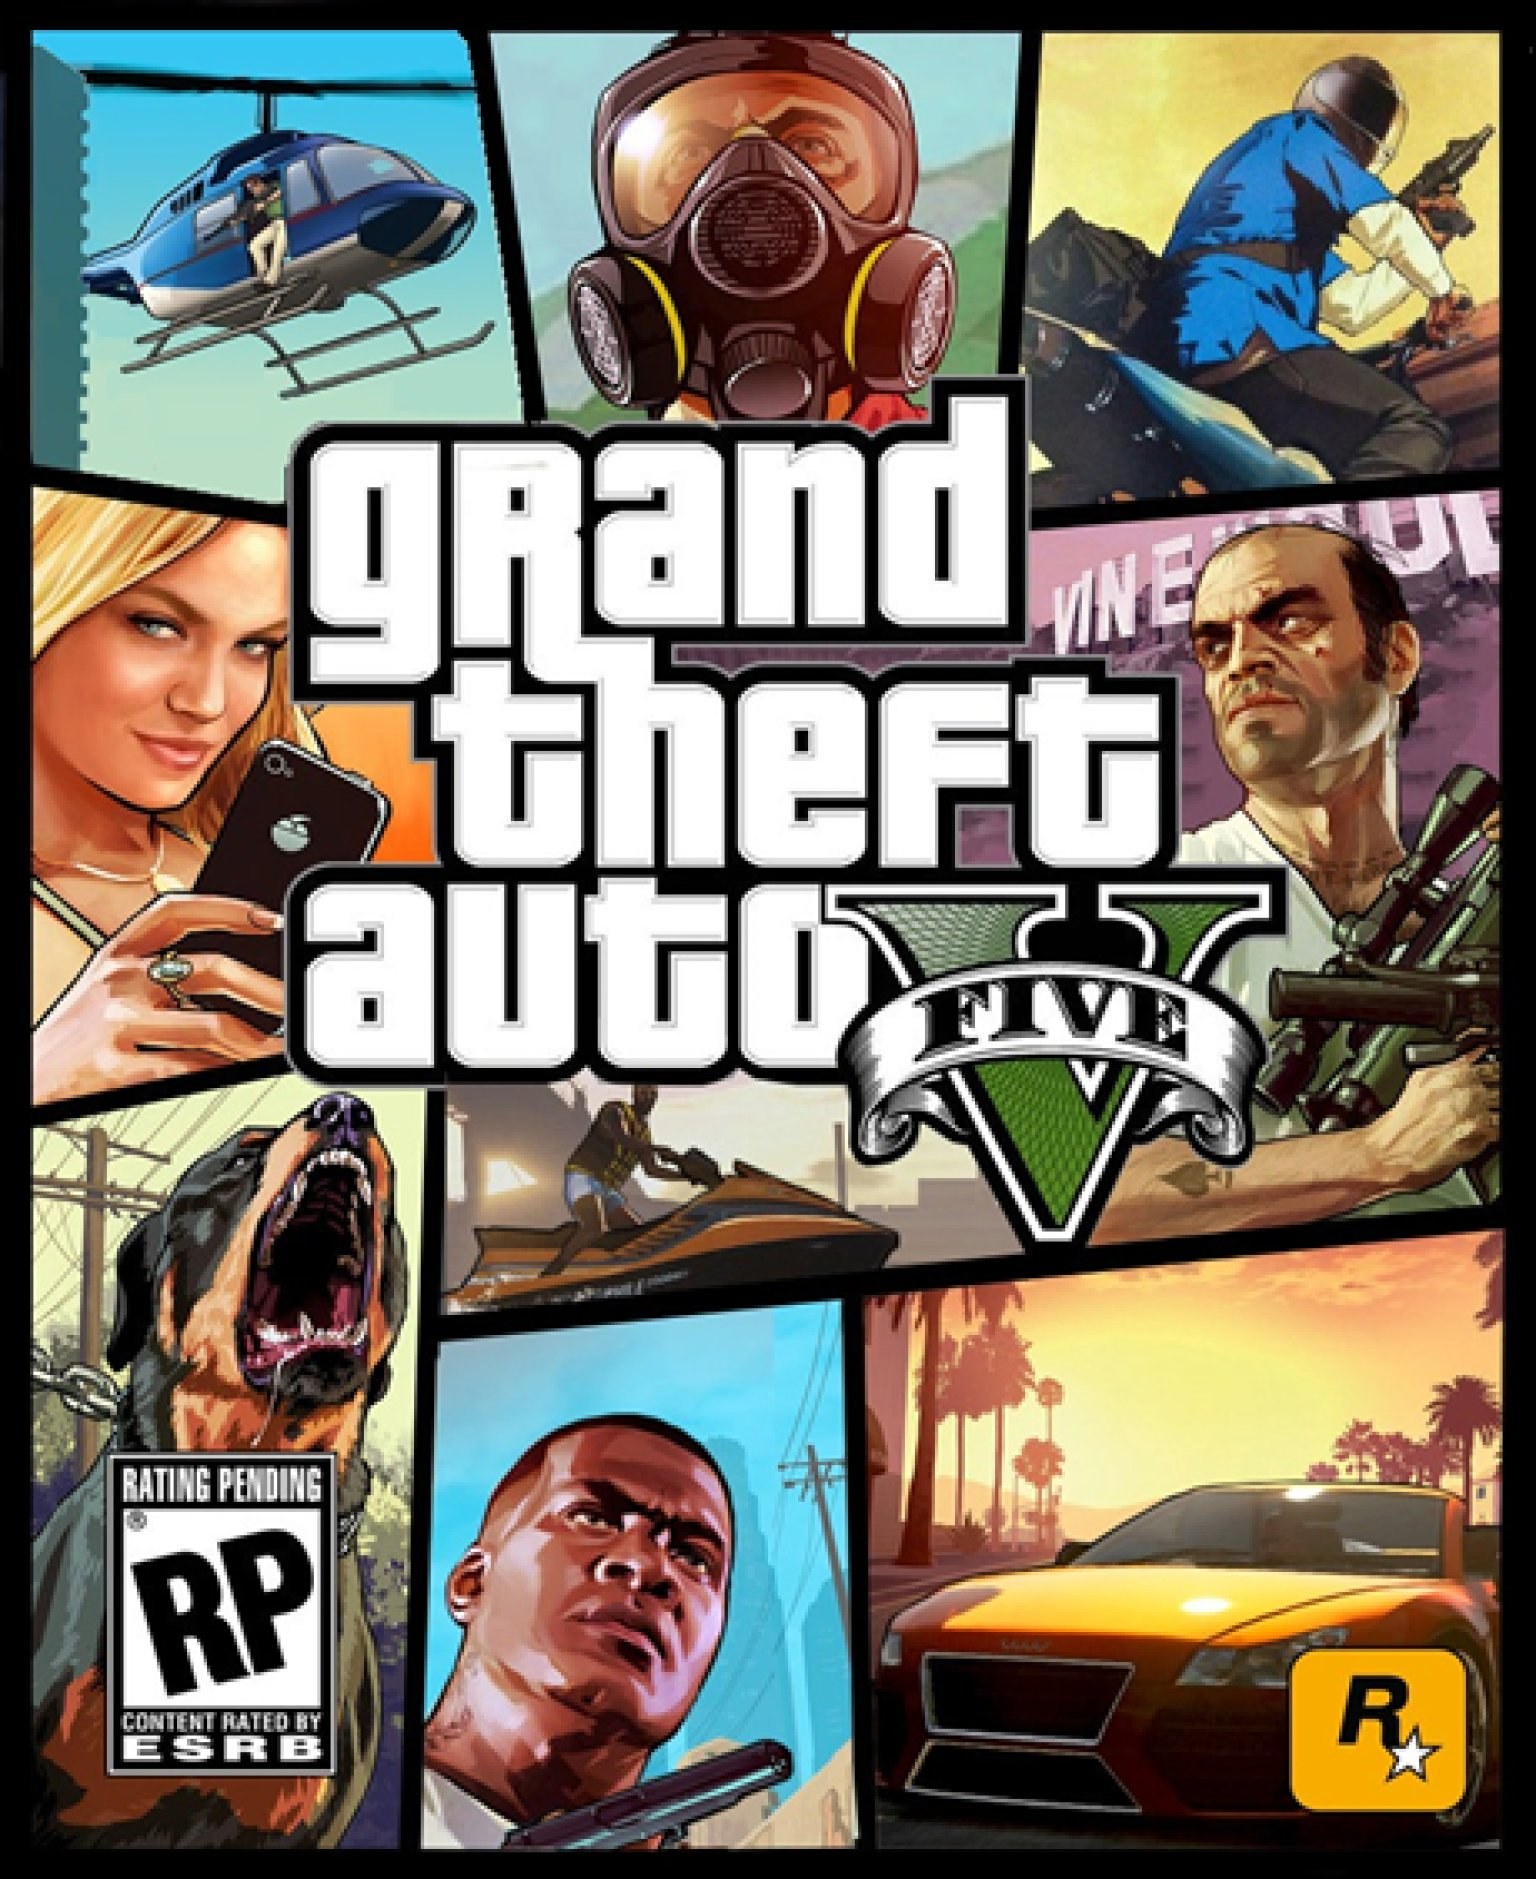 Gta Grand Theft Auto V 5 Ps3: GTA 5: Install The Wrong Disc, Break The Game (VIDEO